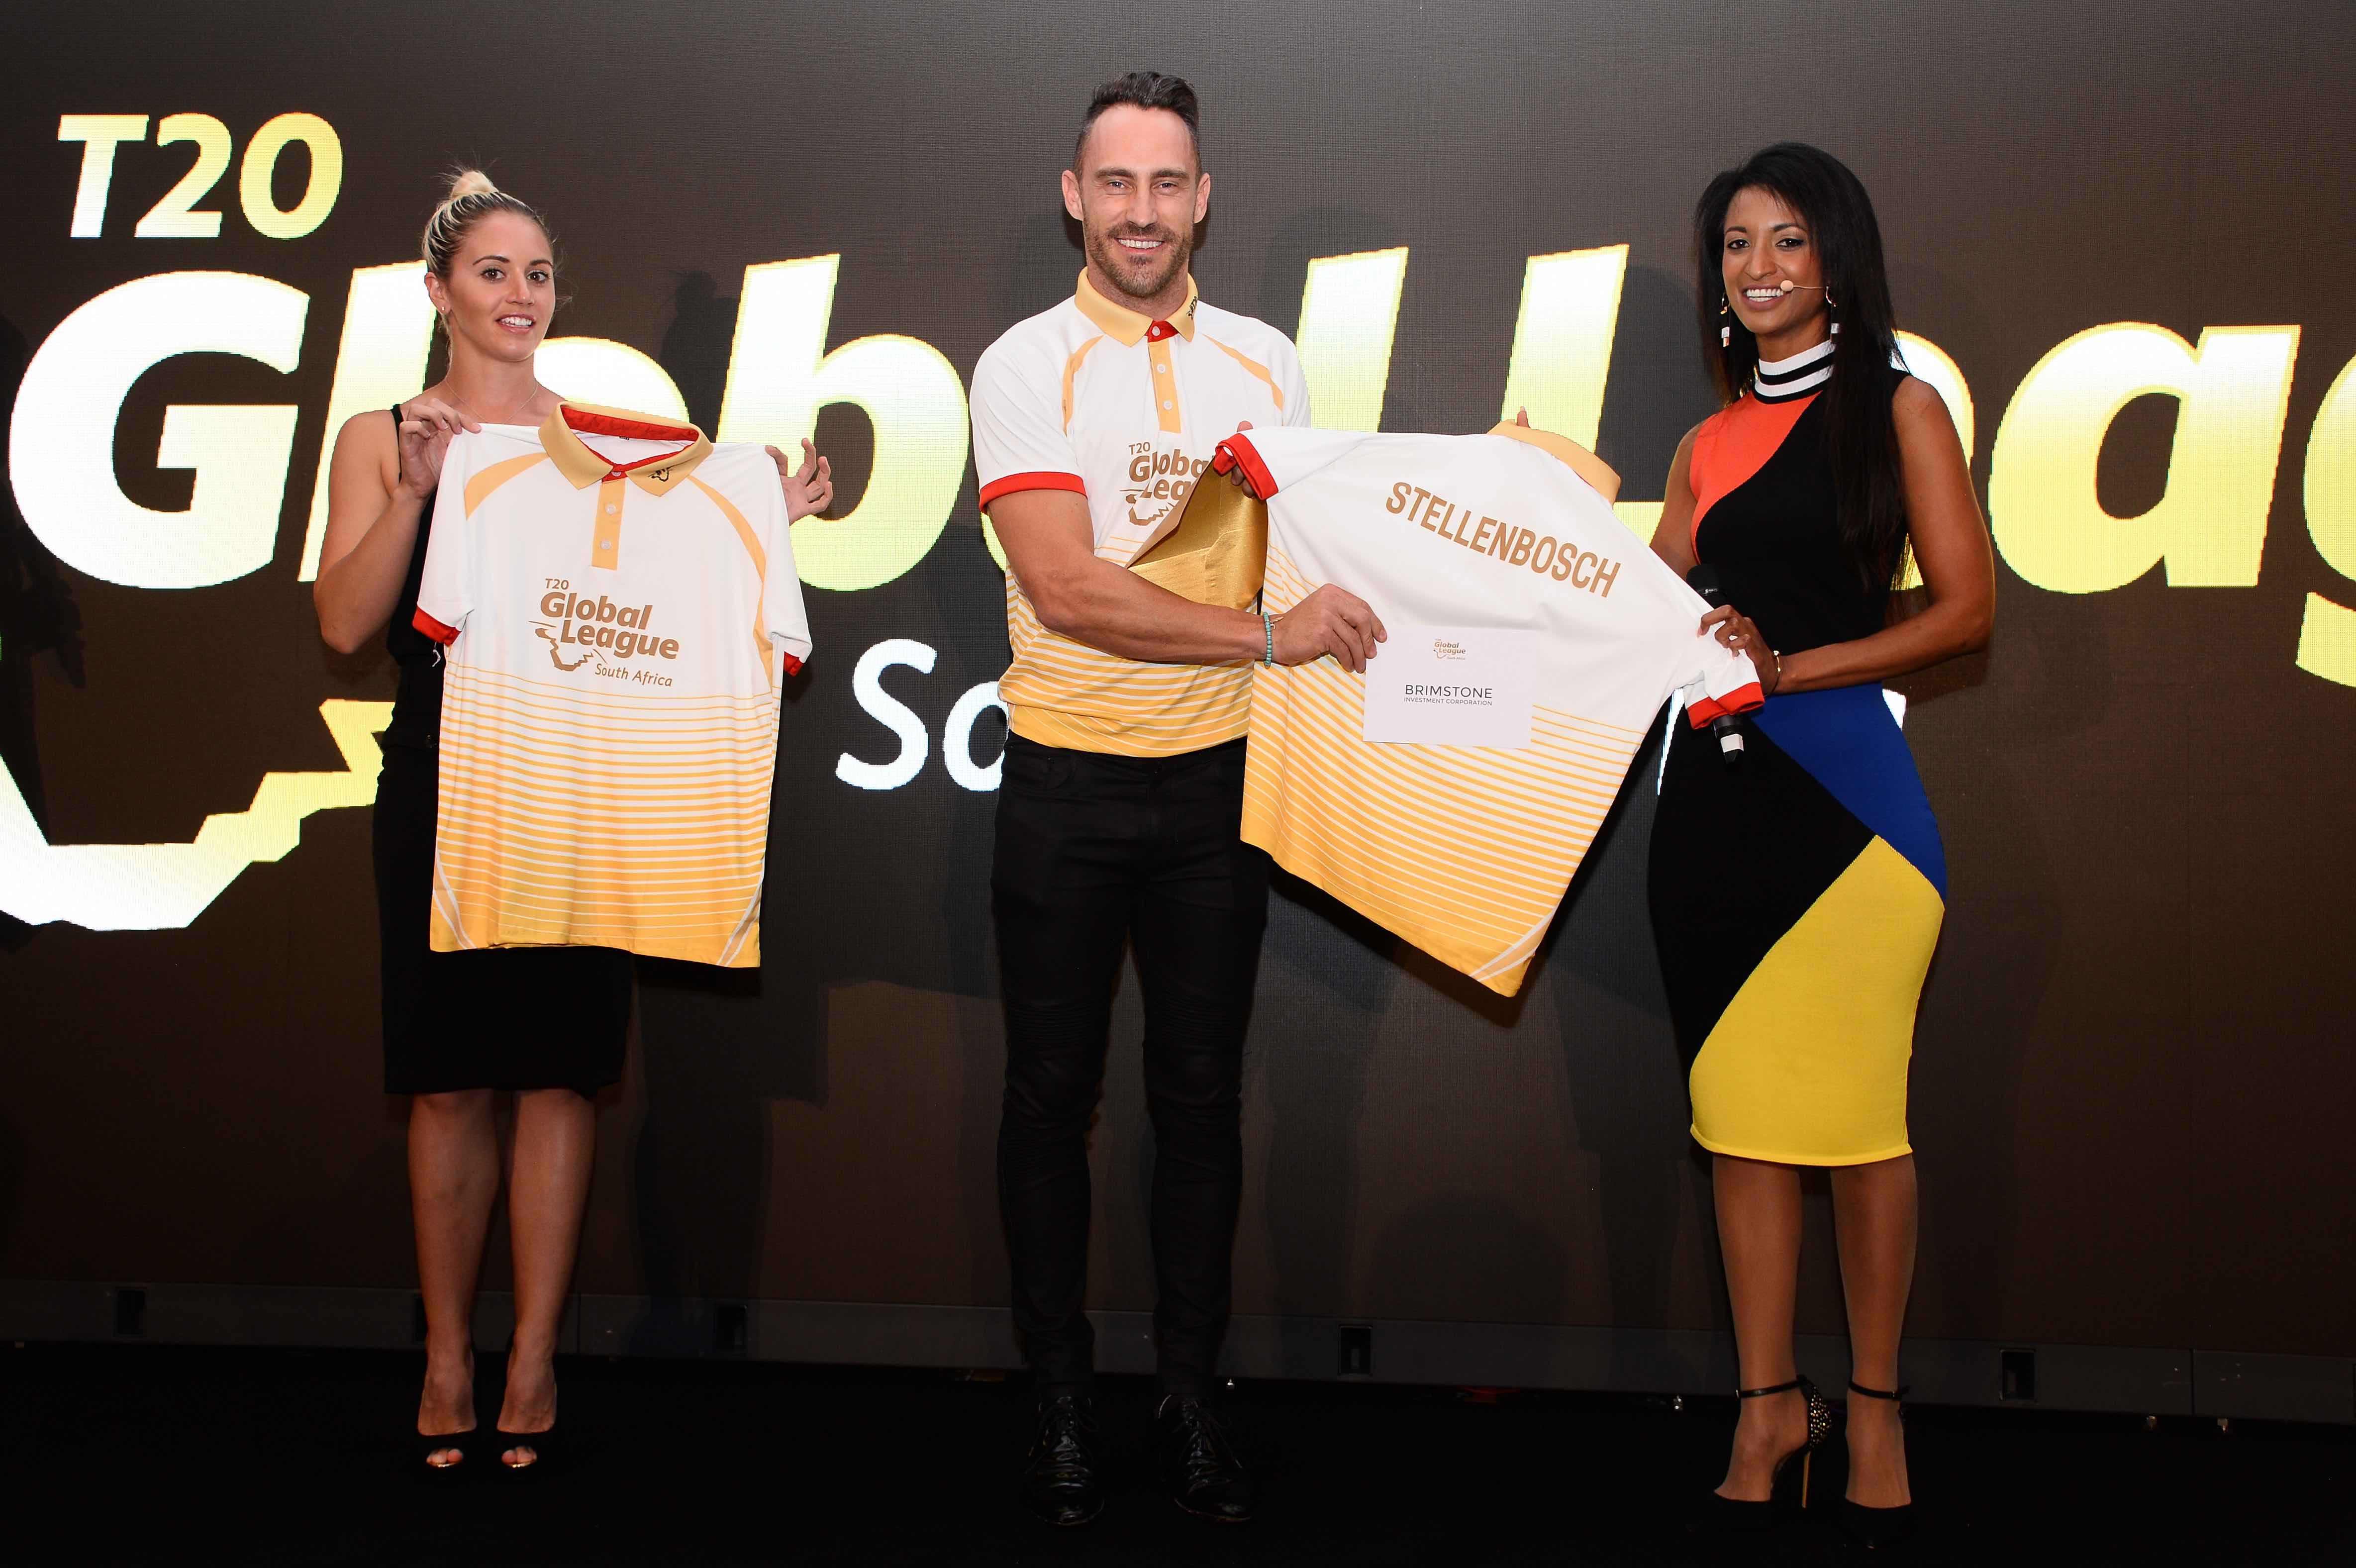 LONDON, ENGLAND - JUNE 19: Faf du Plessis during the T20 Global League Launch at Bvlgari Hotel London on June 19, 2017 in London, England. (Photo by Patrik Lundin/Gallo Images)